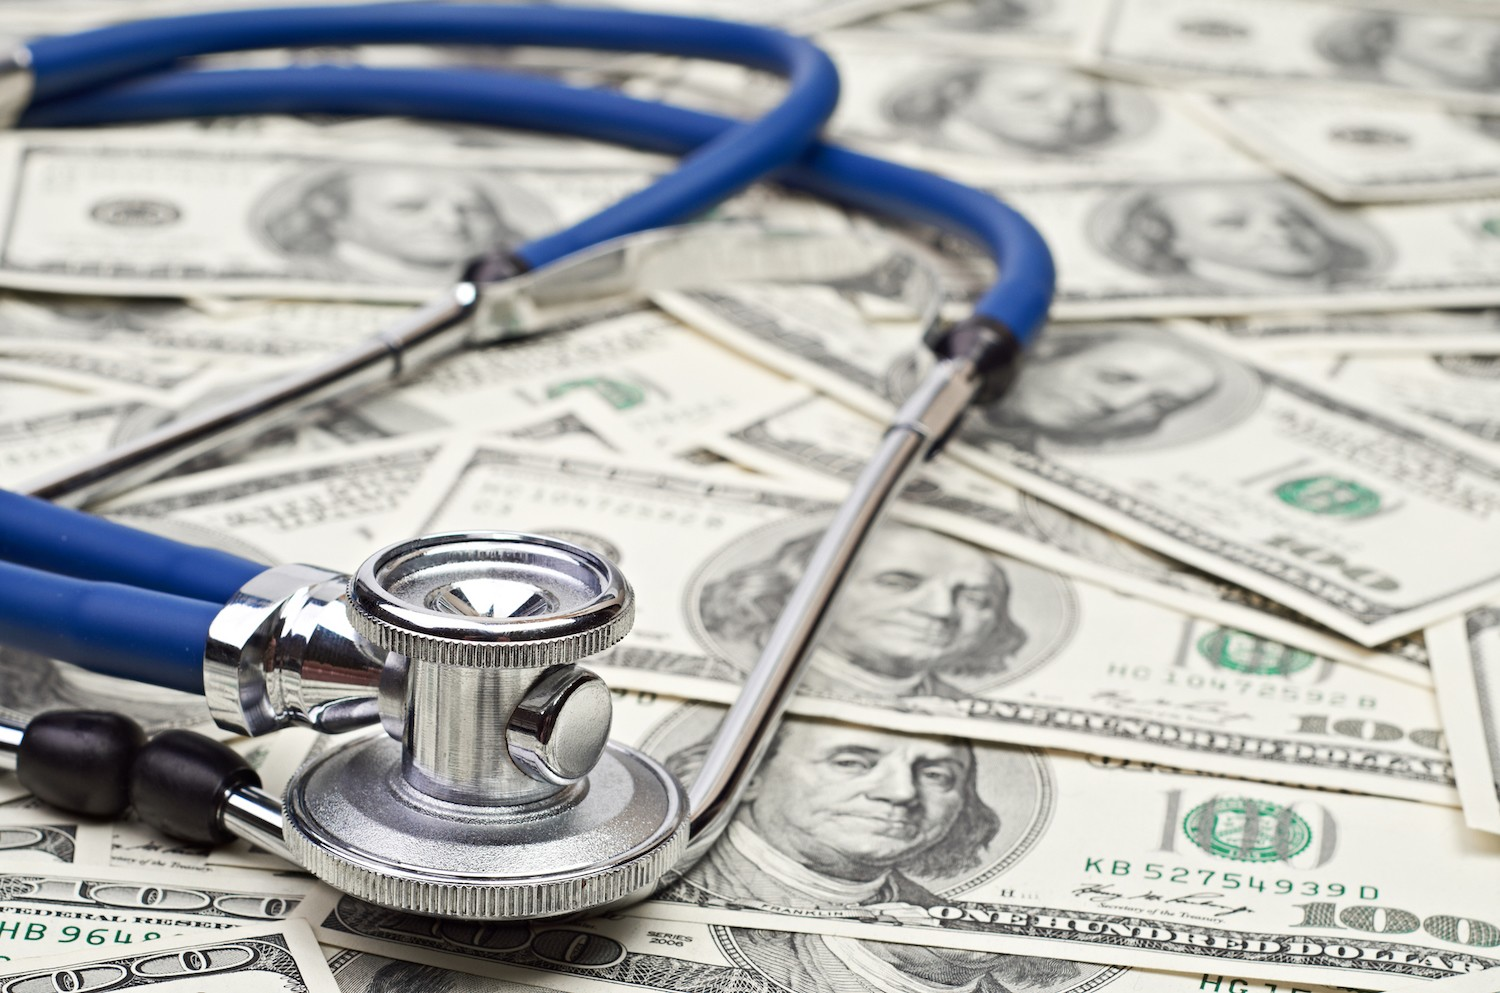 How to Count Healthcare Costs: Be Wise While Paying for Coverage